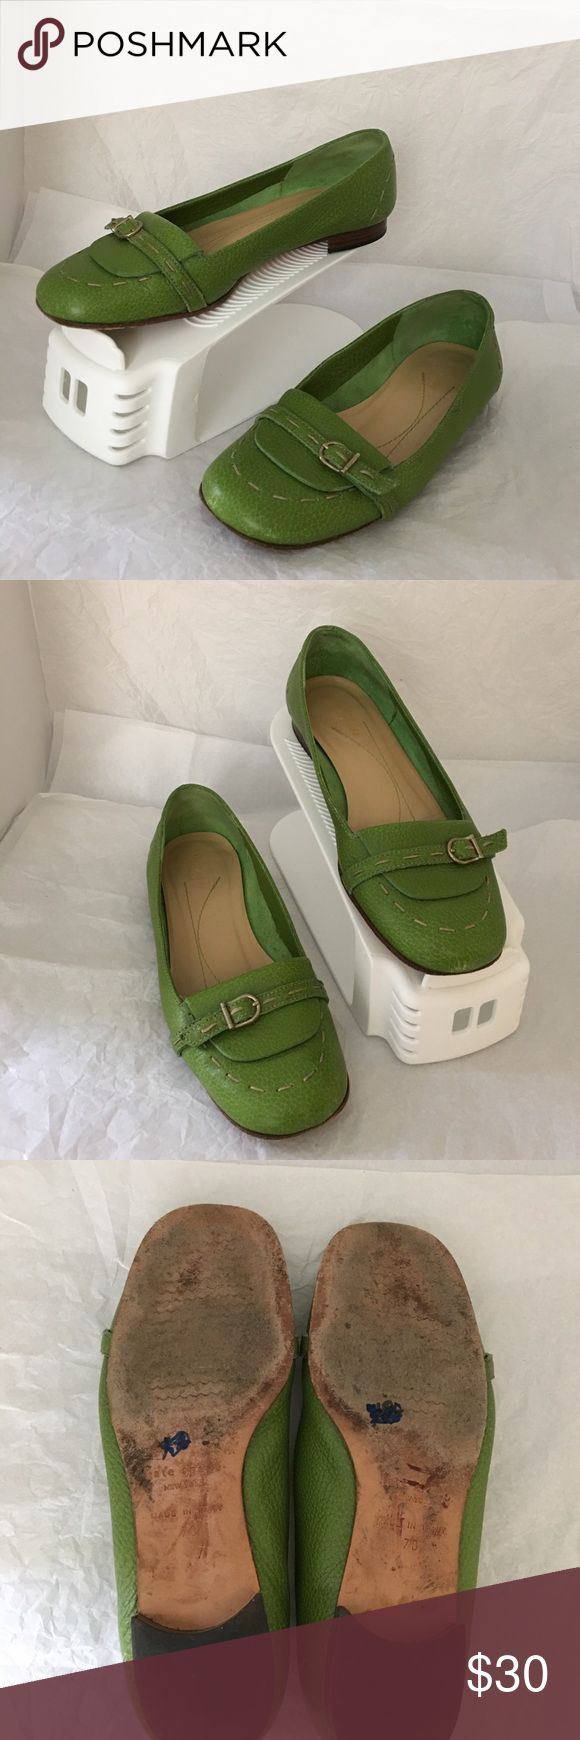 Kate Spade flats Pre owned Kate Spade flare in good condition. Please zoom in on the pictures. Size is 7C smoke and pet free house kate spade Shoes Flats & Loafers